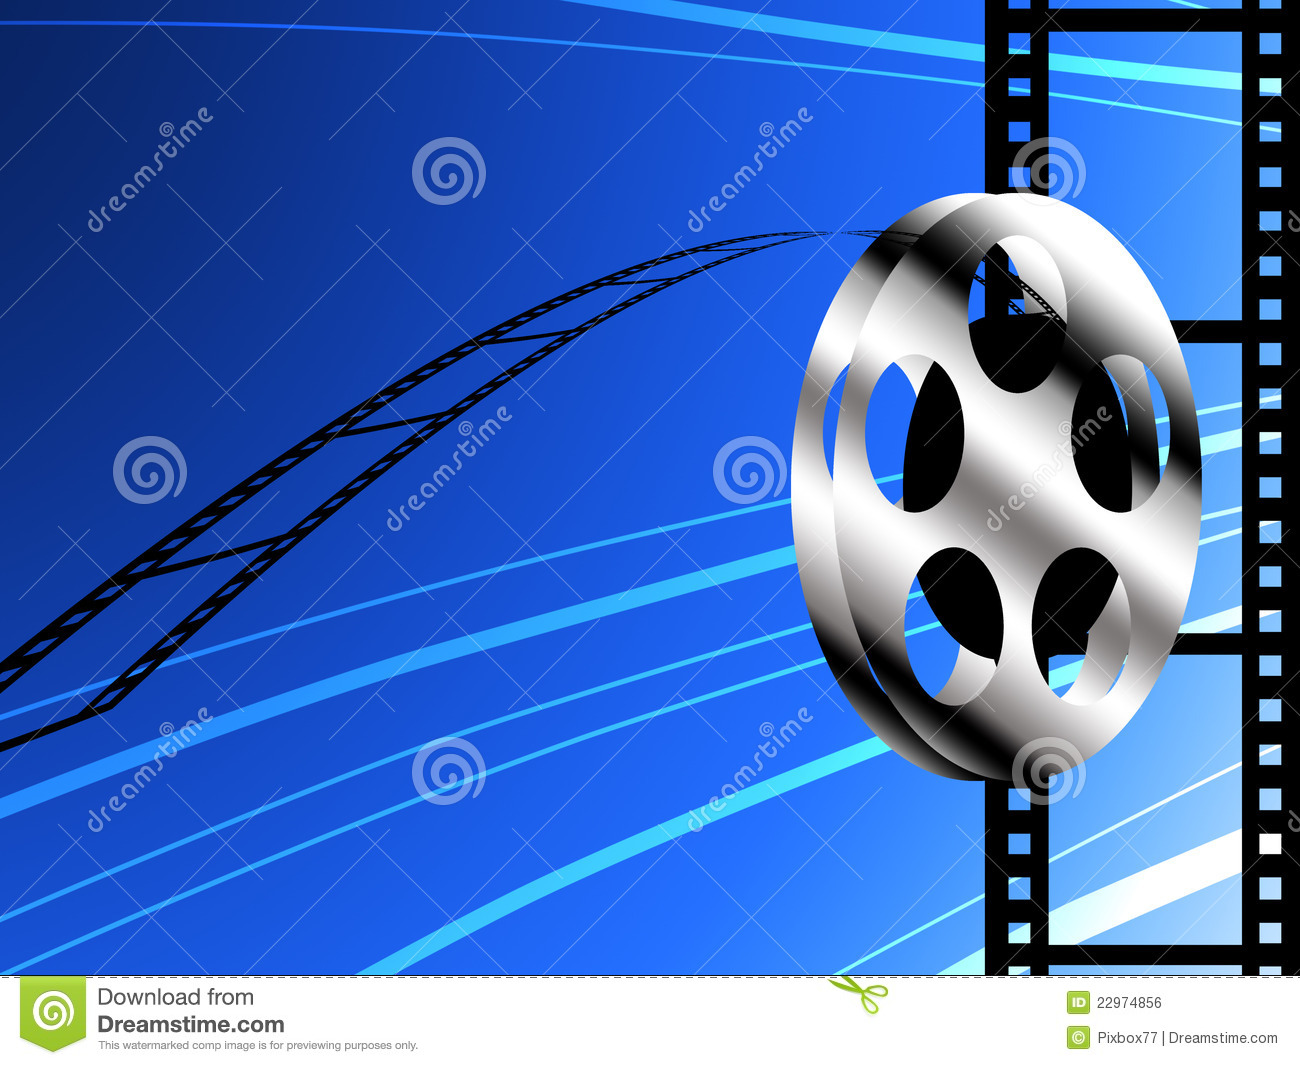 Film Roll Background Royalty Free Stock Image  Image: 22974856